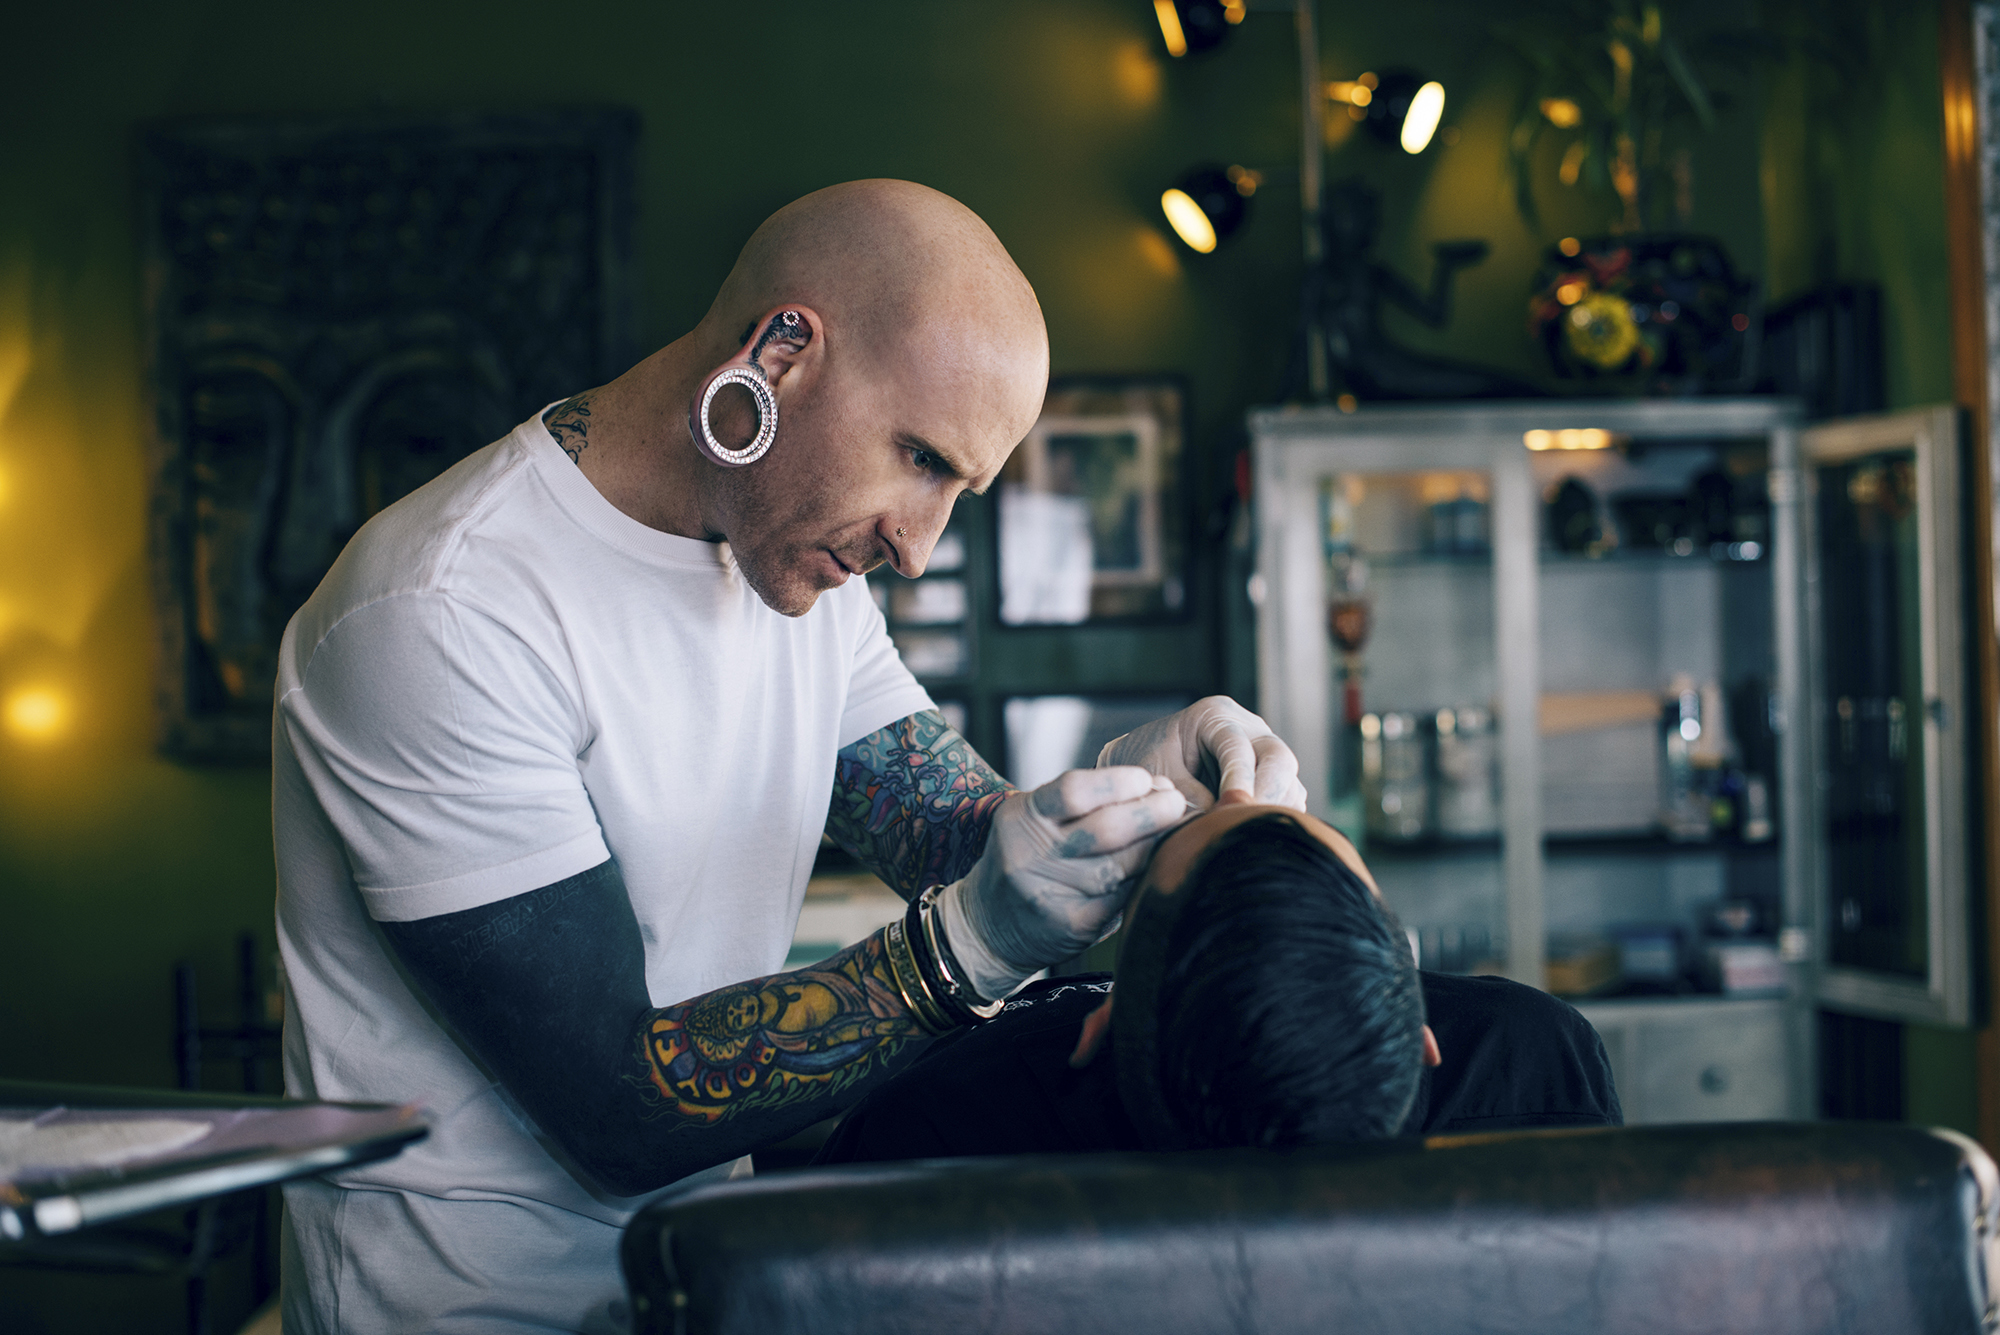 Teen Wants A Tattoo Pediatricians Say Here S How To Do It Safely New Hampshire Public Radio